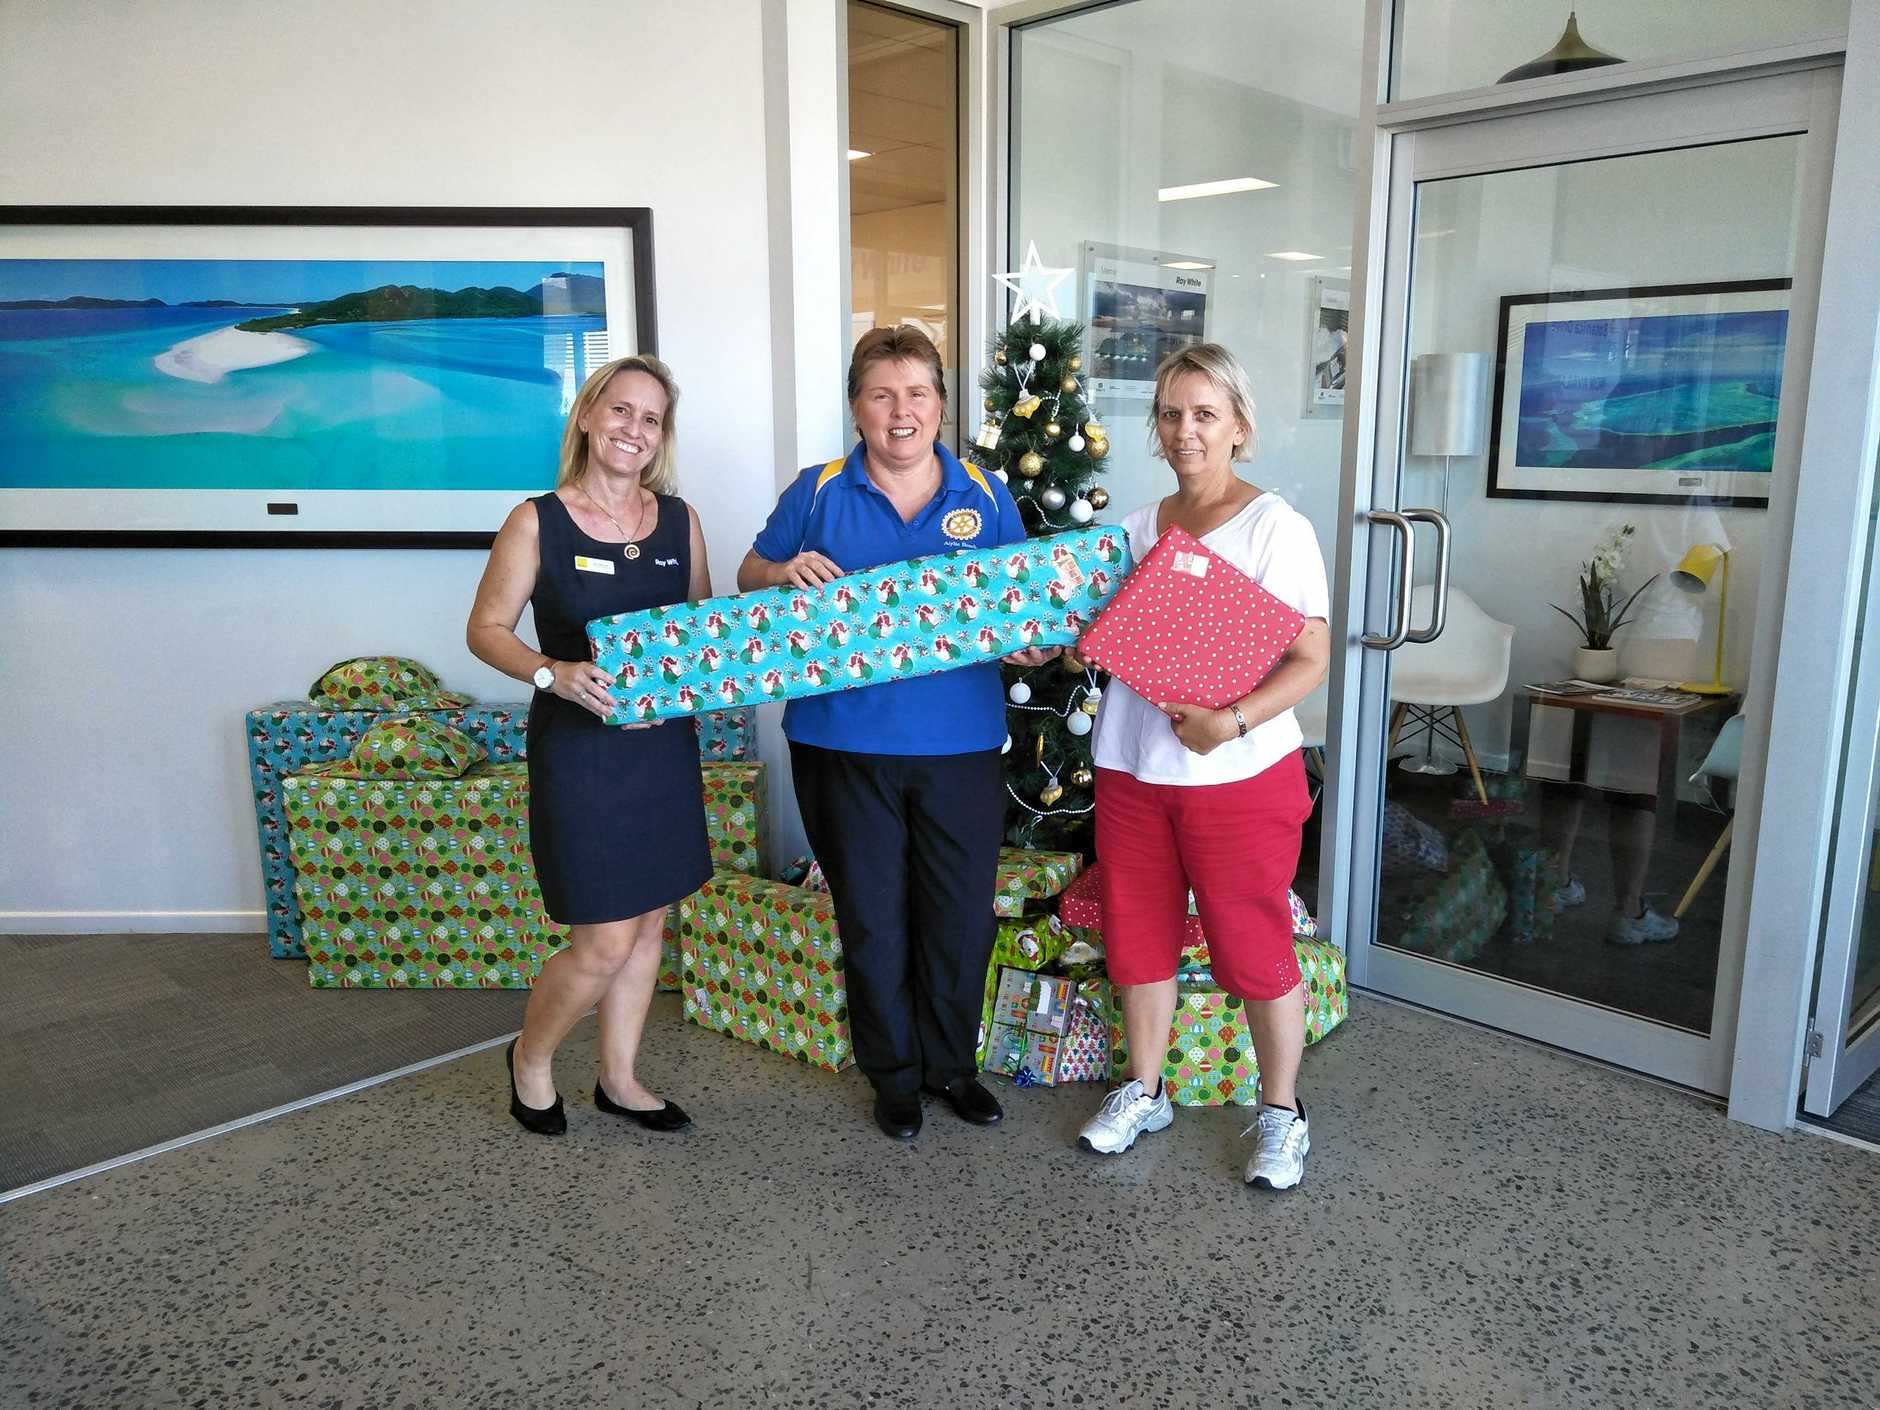 Ray White Whitsunday office manager Zoe Skinner, Rotary Club's Denise Norder and The Salvation Army's Donna Fraser round up gifts for community Christmas donations.